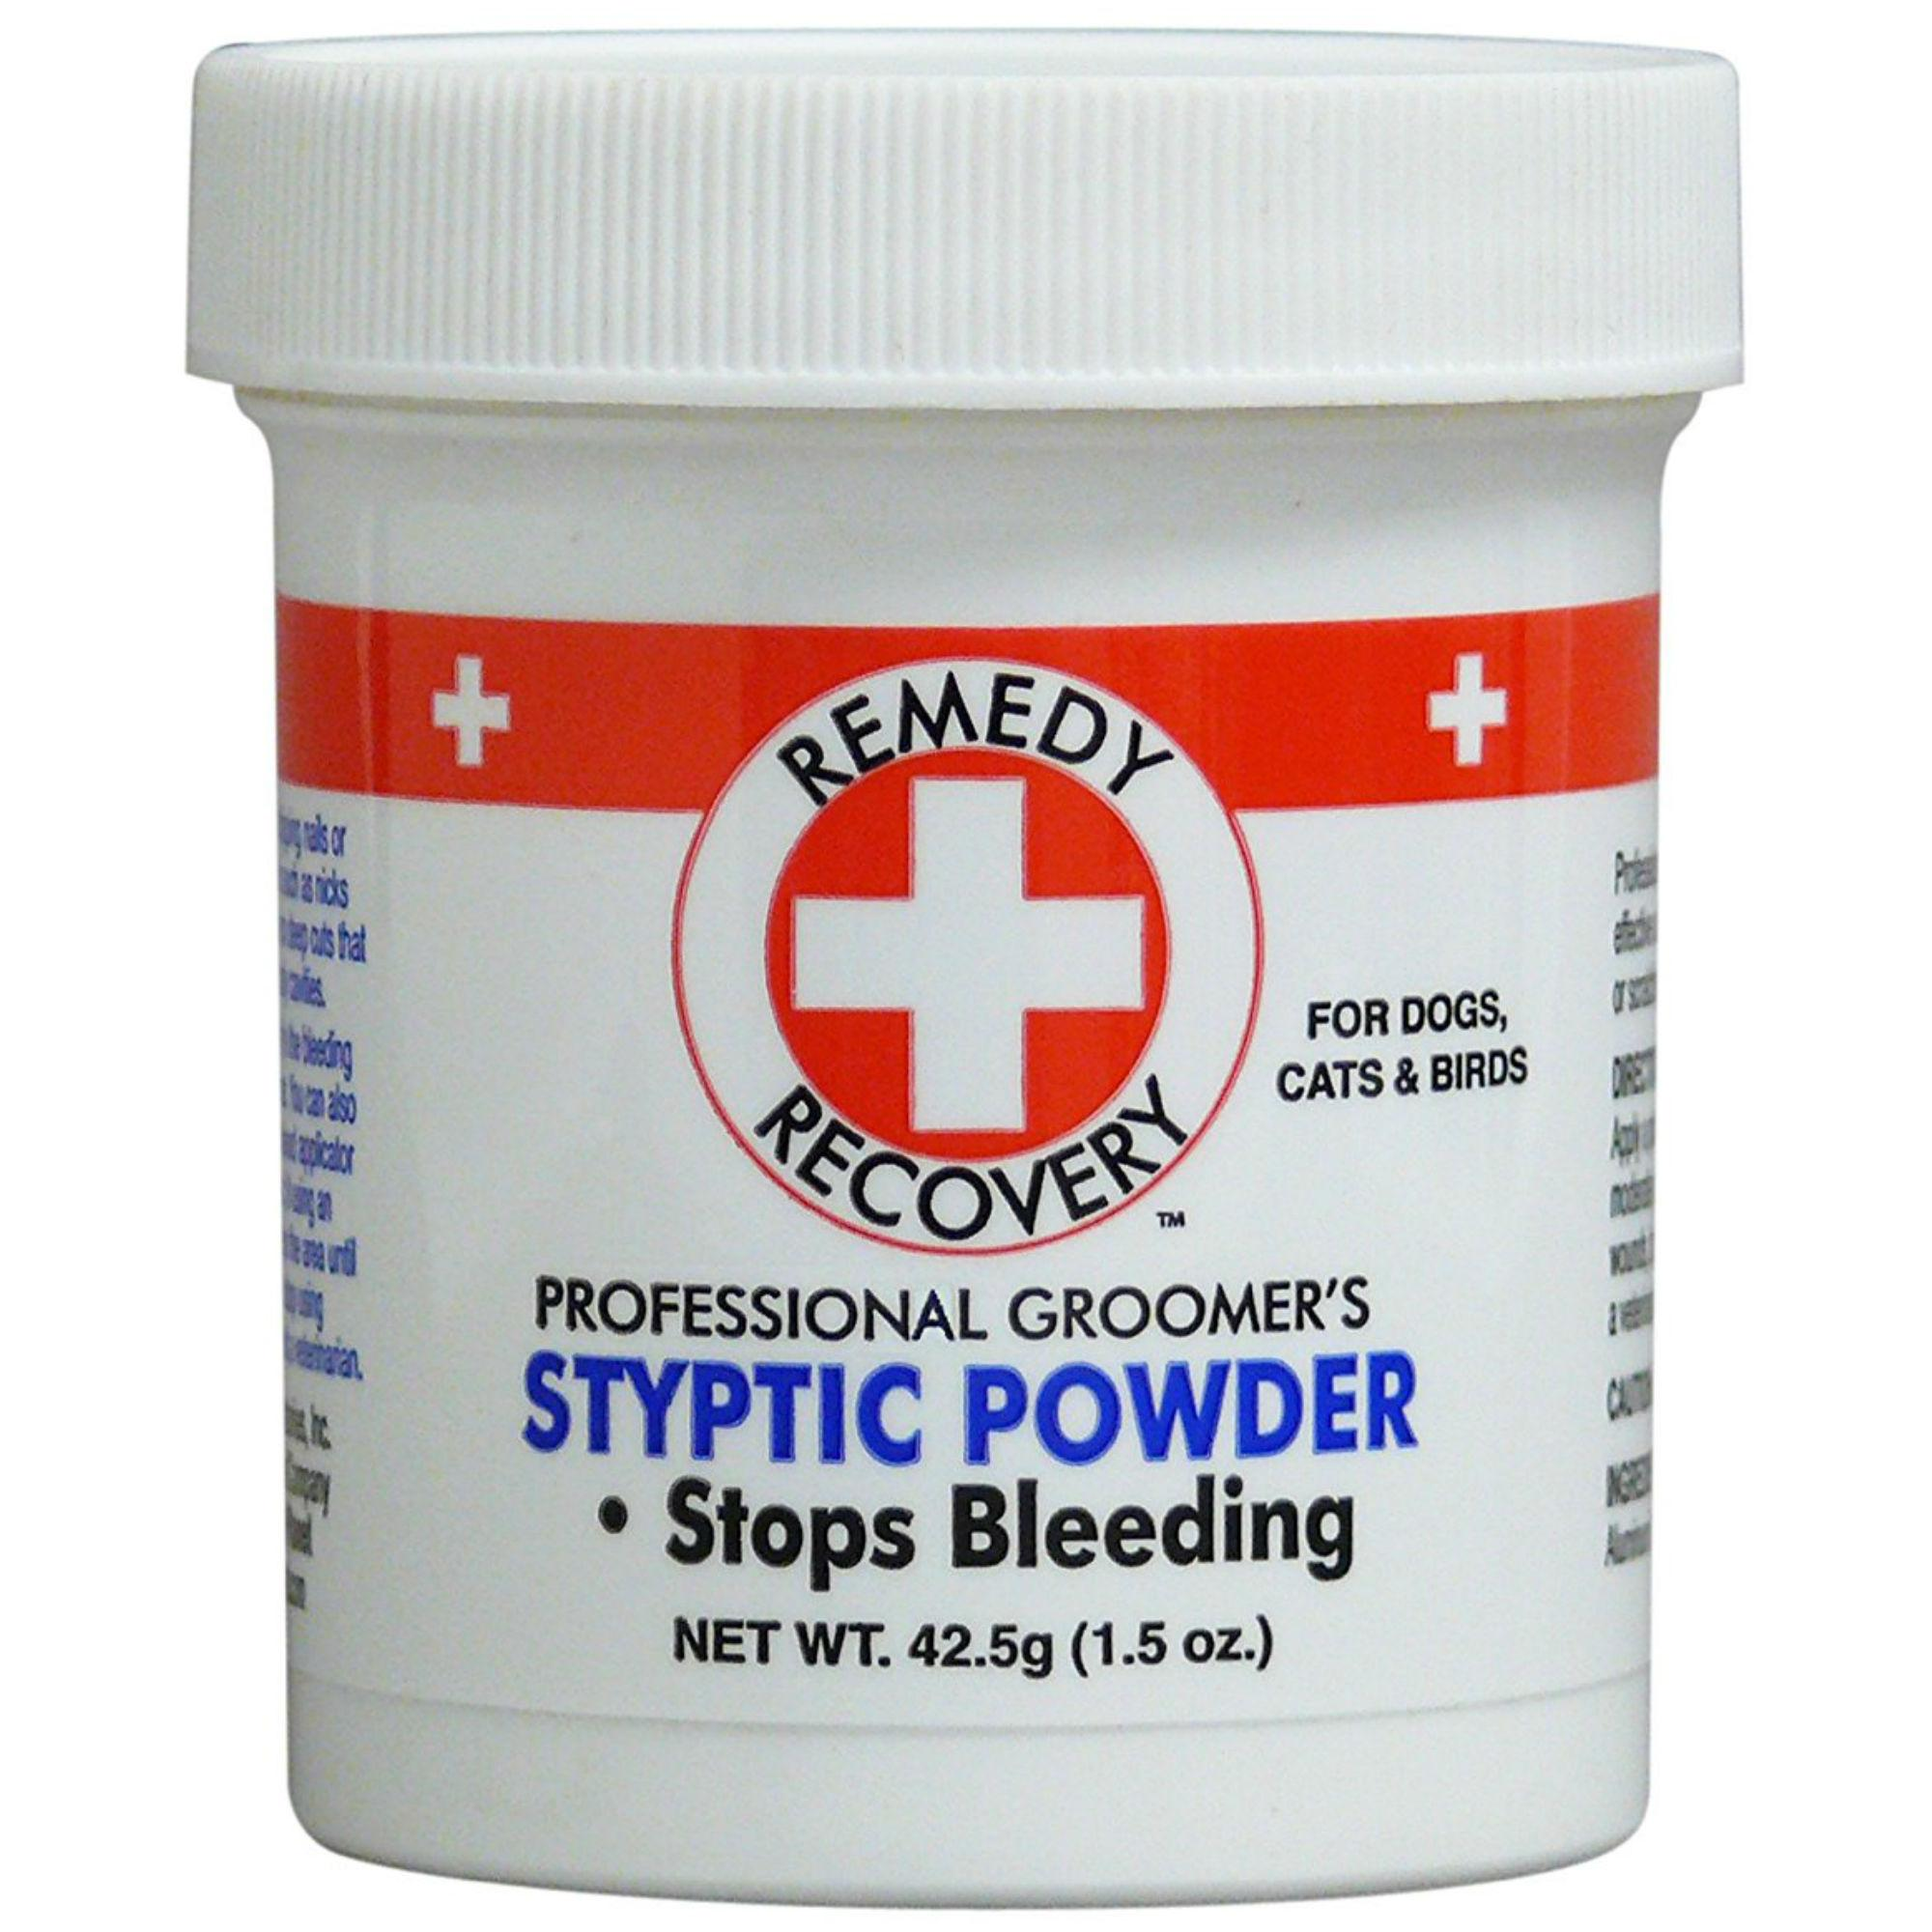 Remedy and Recovery Pet Styptic Powder